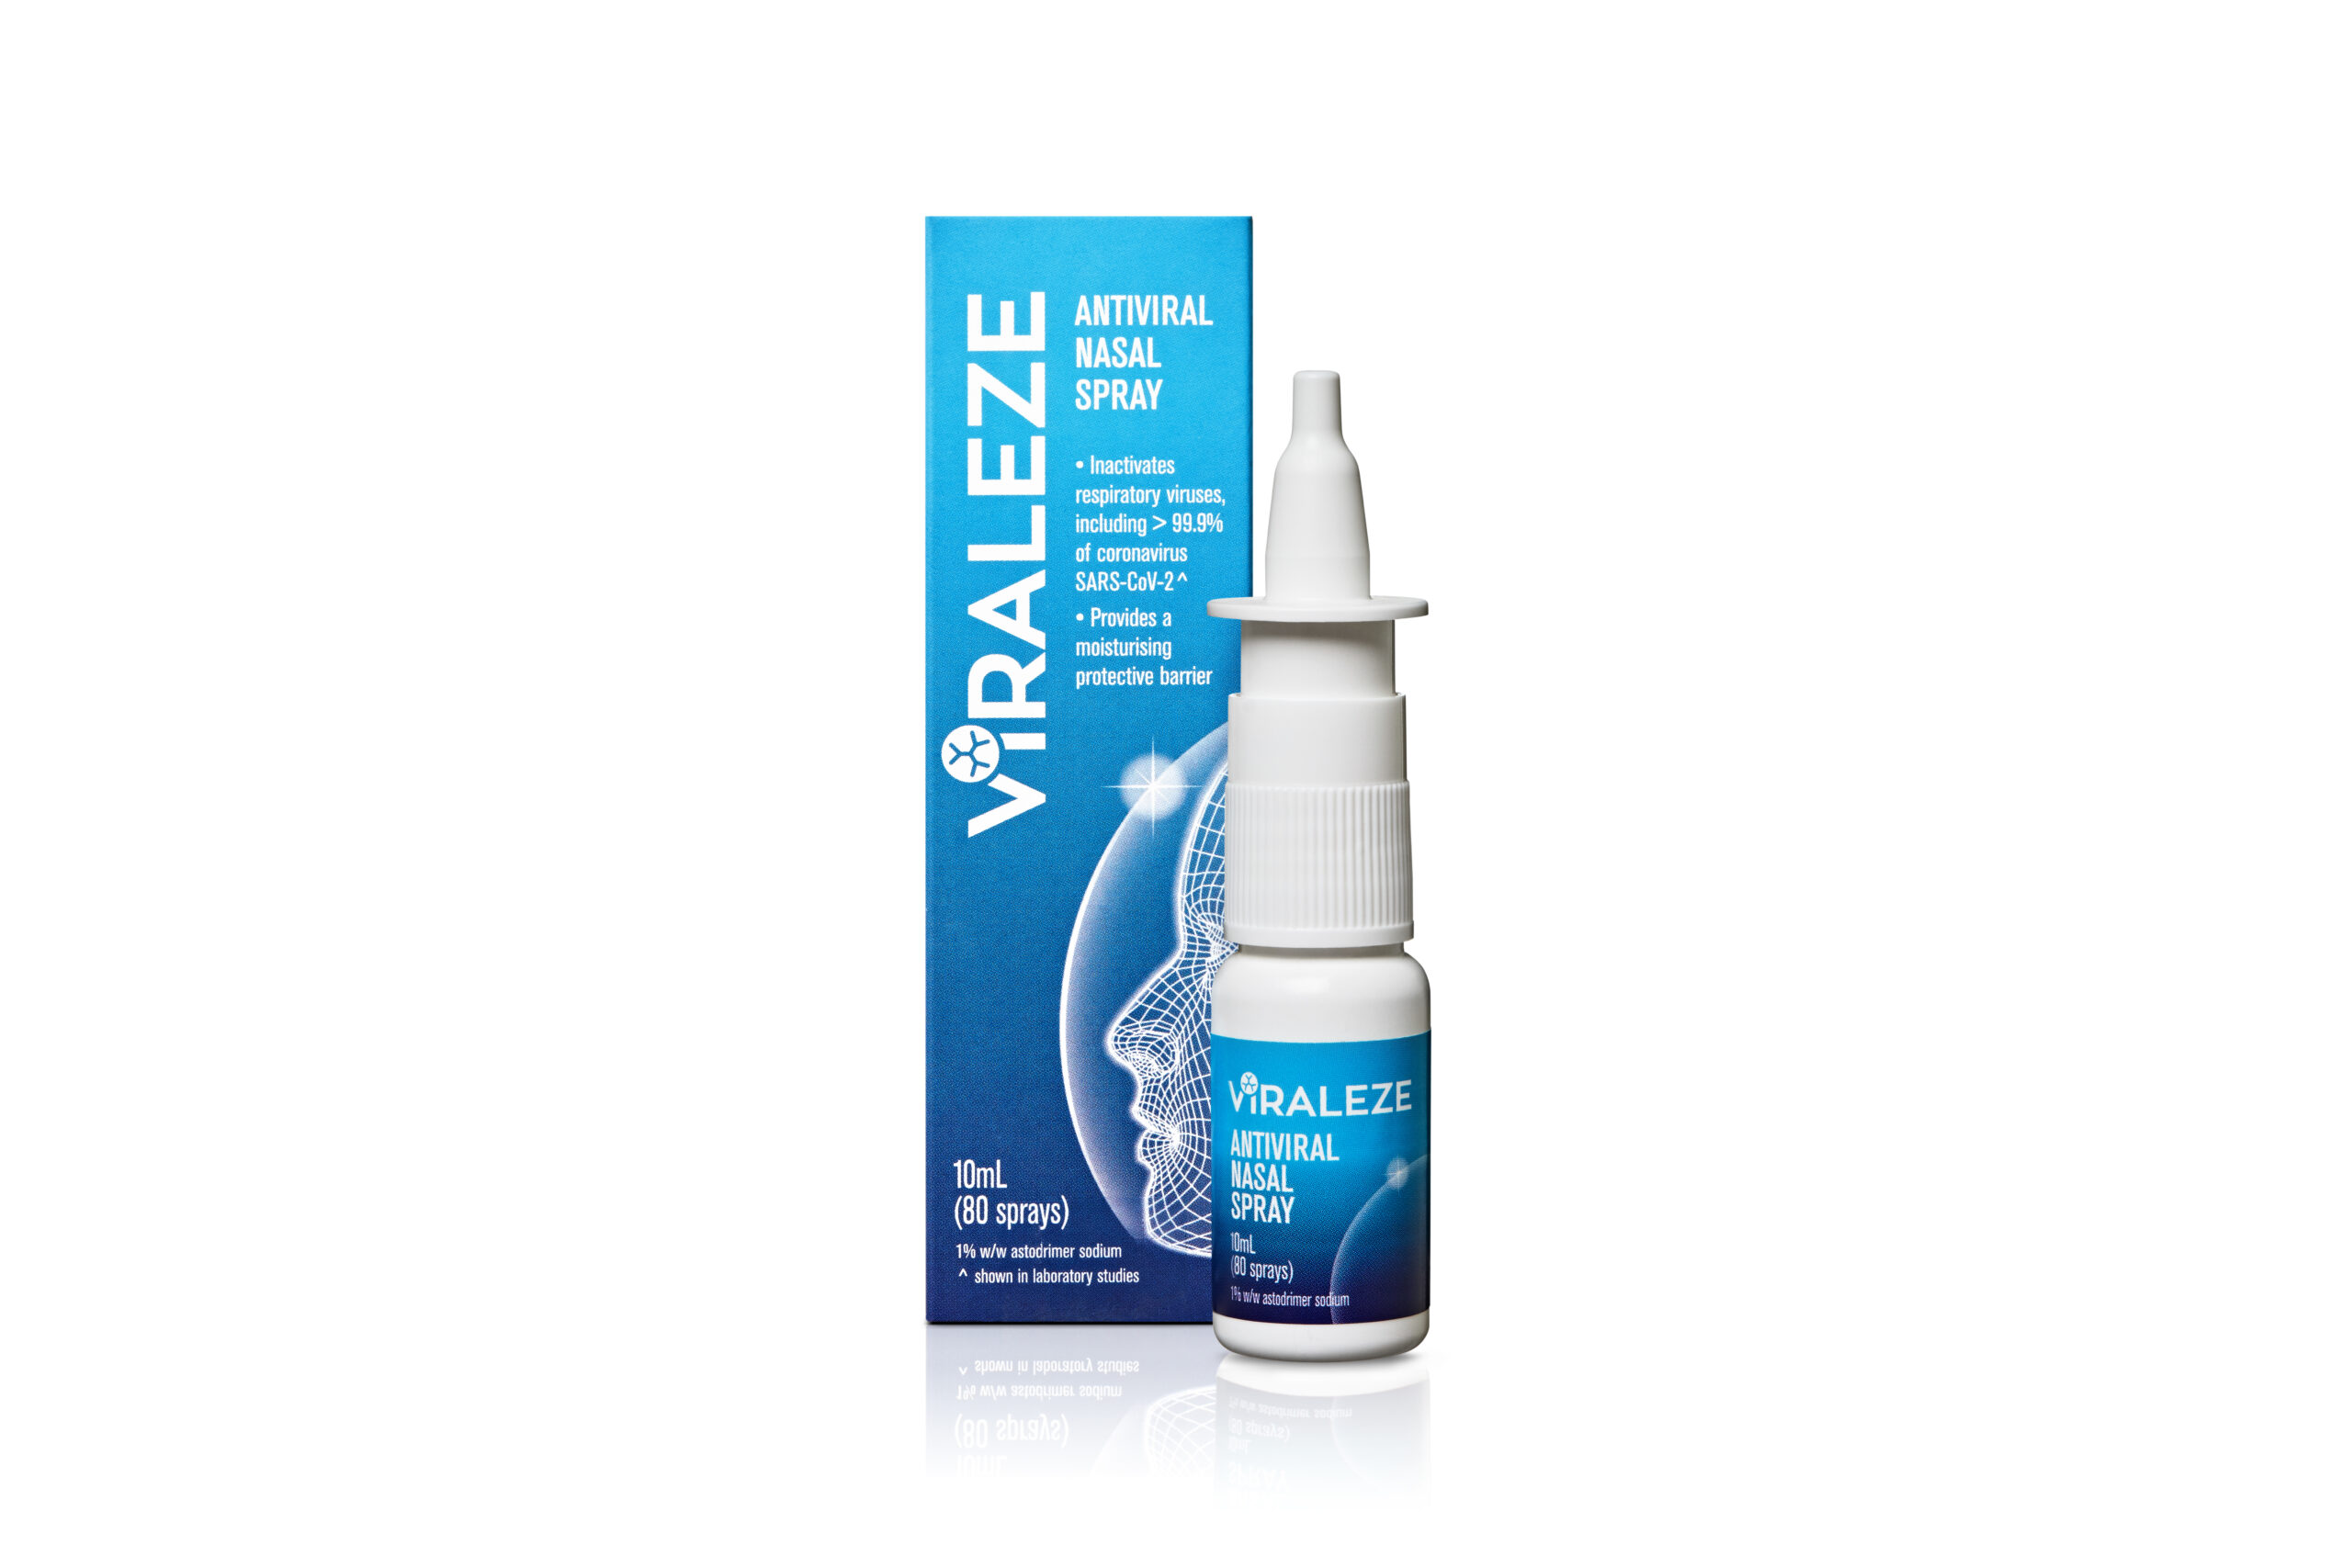 LloydsPharmacy first to launch VIRALEZE™ antiviral nasal spray in the UK